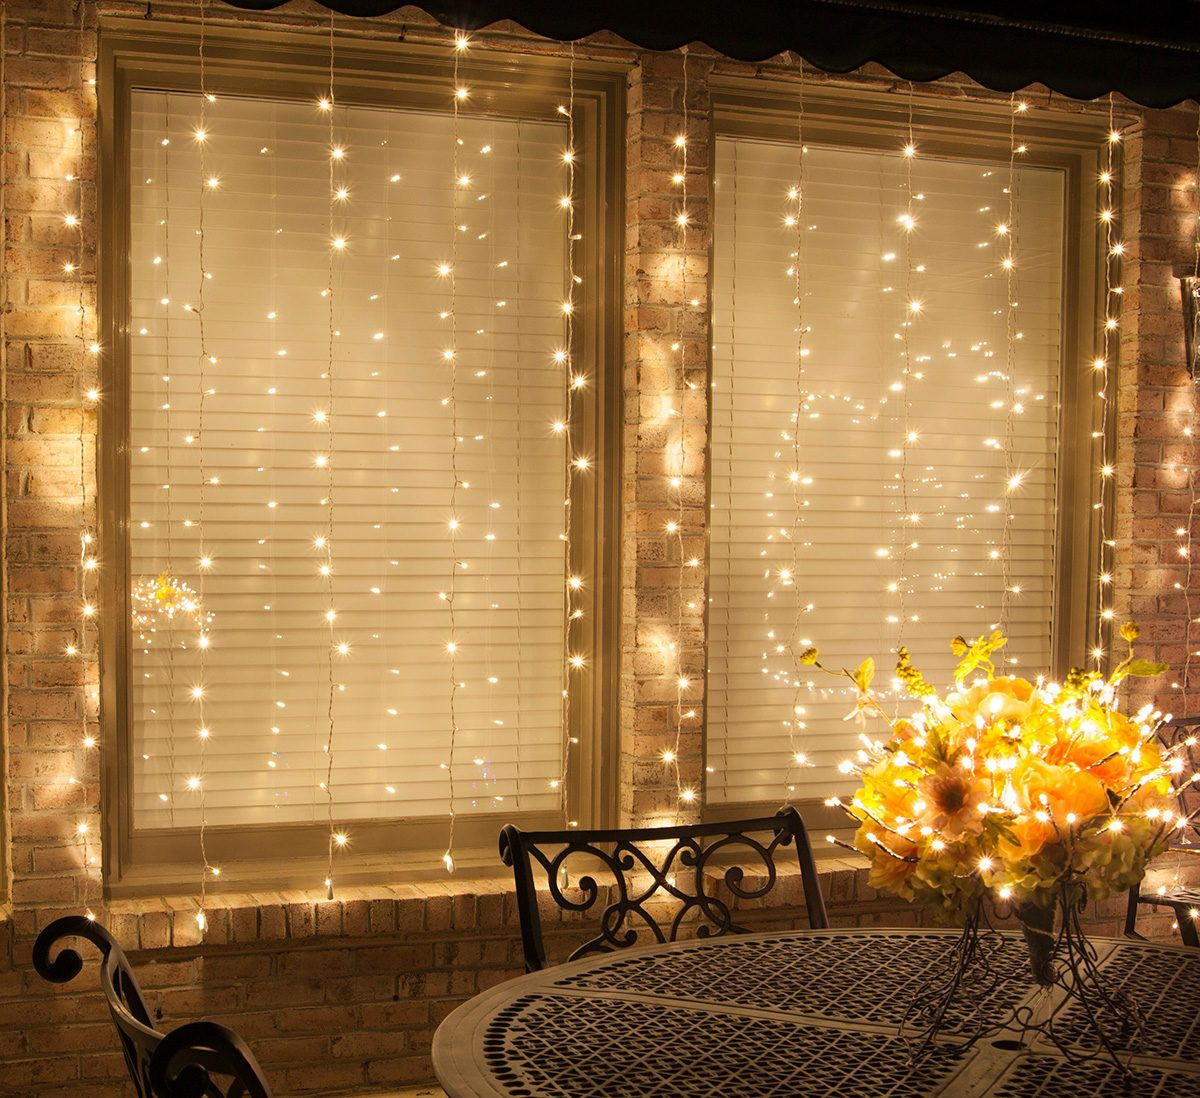 Hanging Outdoor Christmas Lights Youtube: Spoiler Alert! DIY Curtain Lights Are Easier Than You